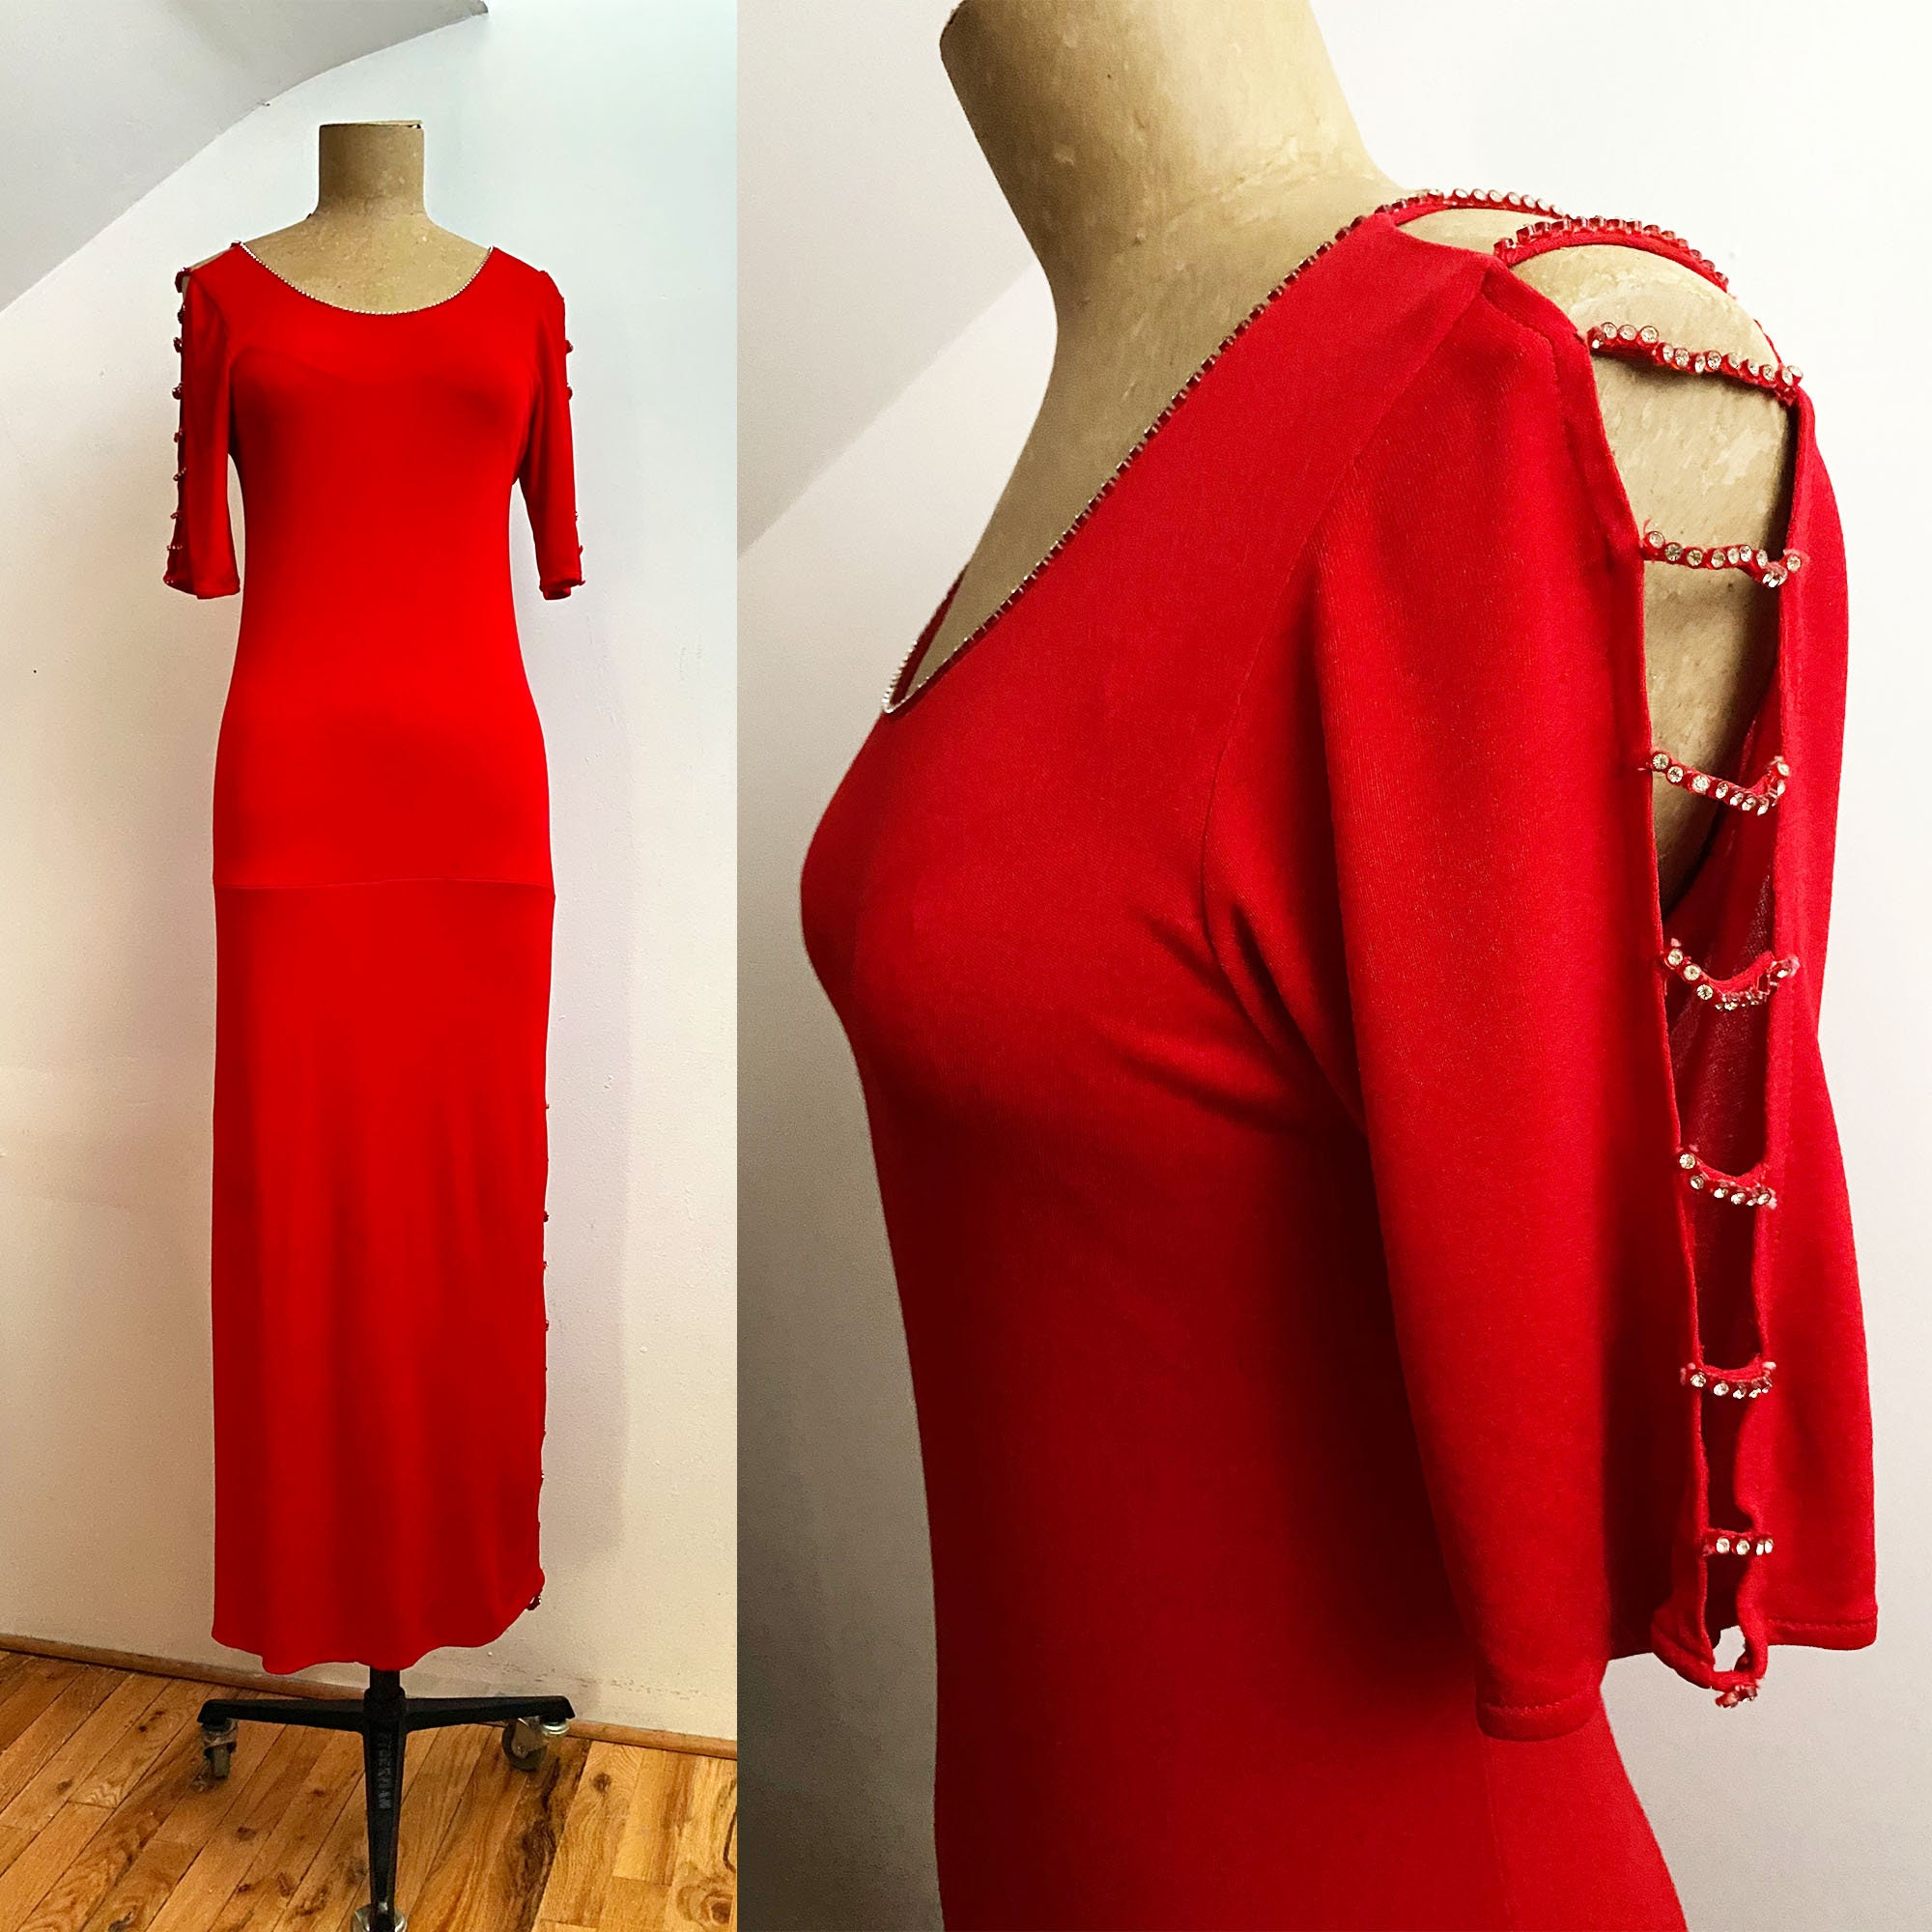 80s Dresses | Casual to Party Dresses 80S Janines Of London Red Rhinestone Matte Jersey Column Dress - Bare Shoulders High Thigh Long $42.00 AT vintagedancer.com